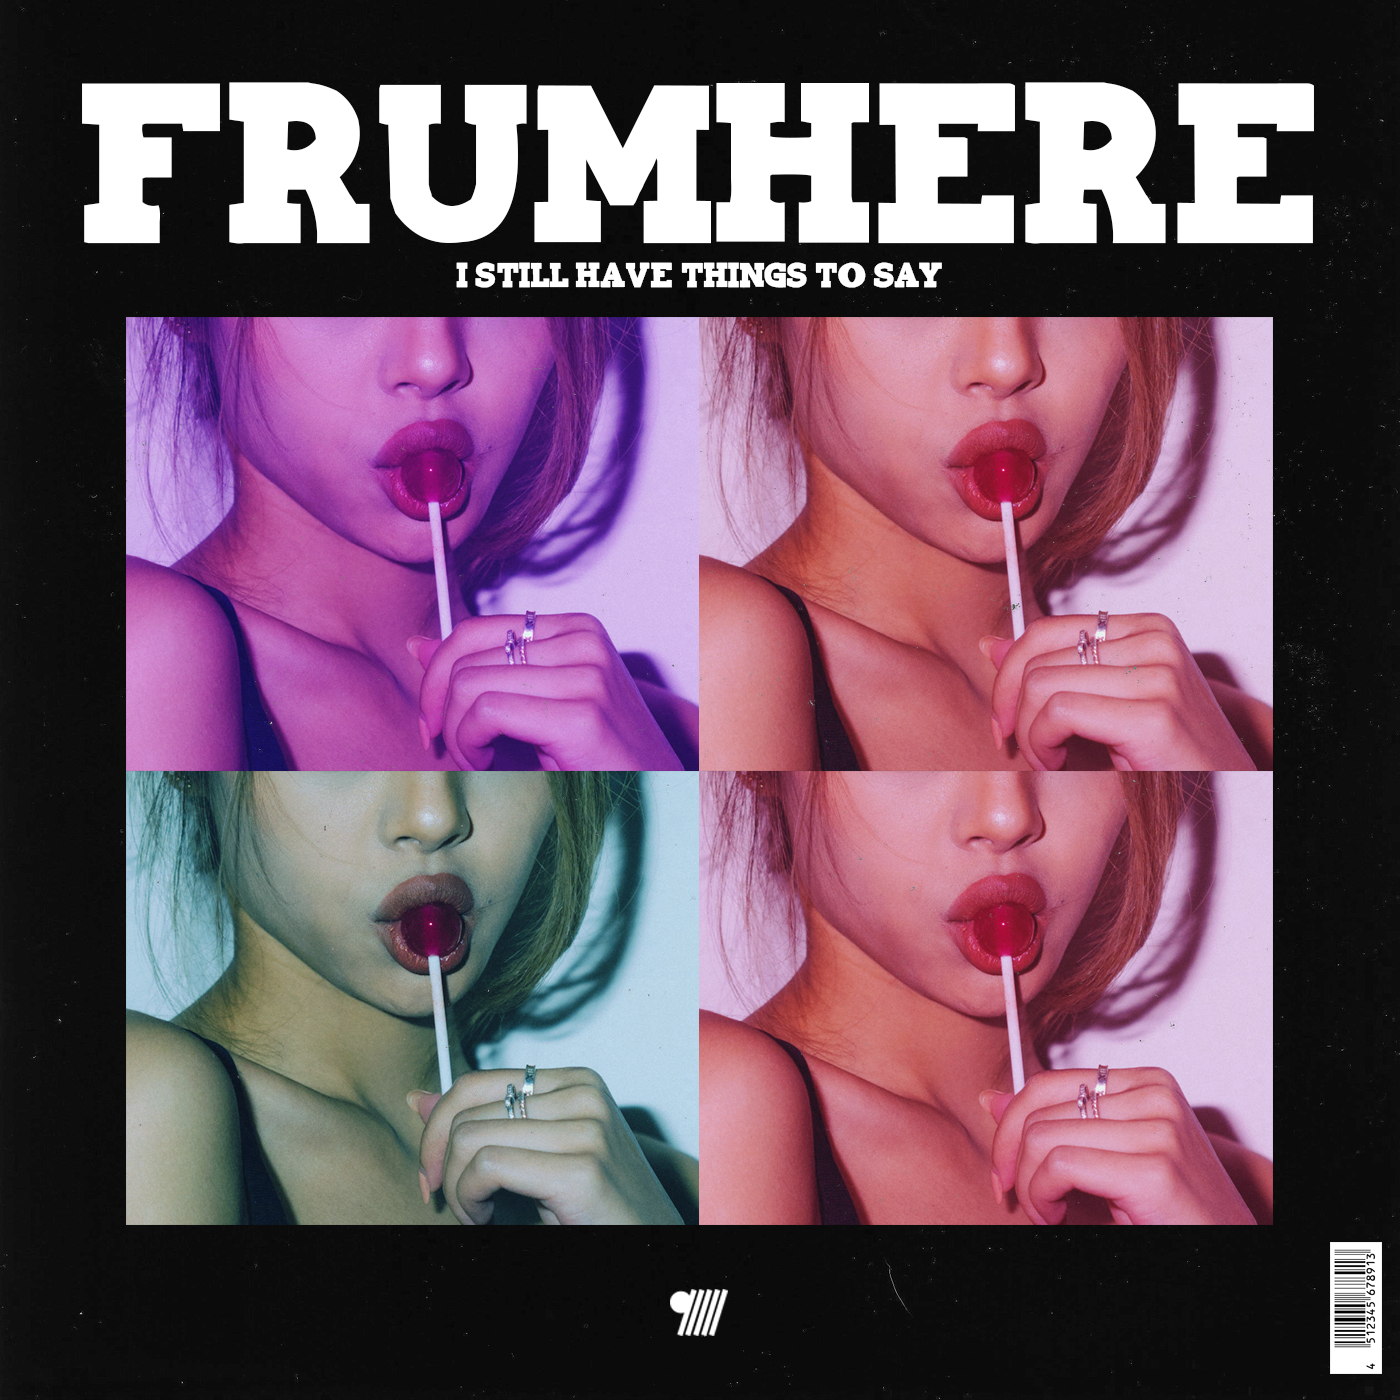 frumhere - i still have things to say